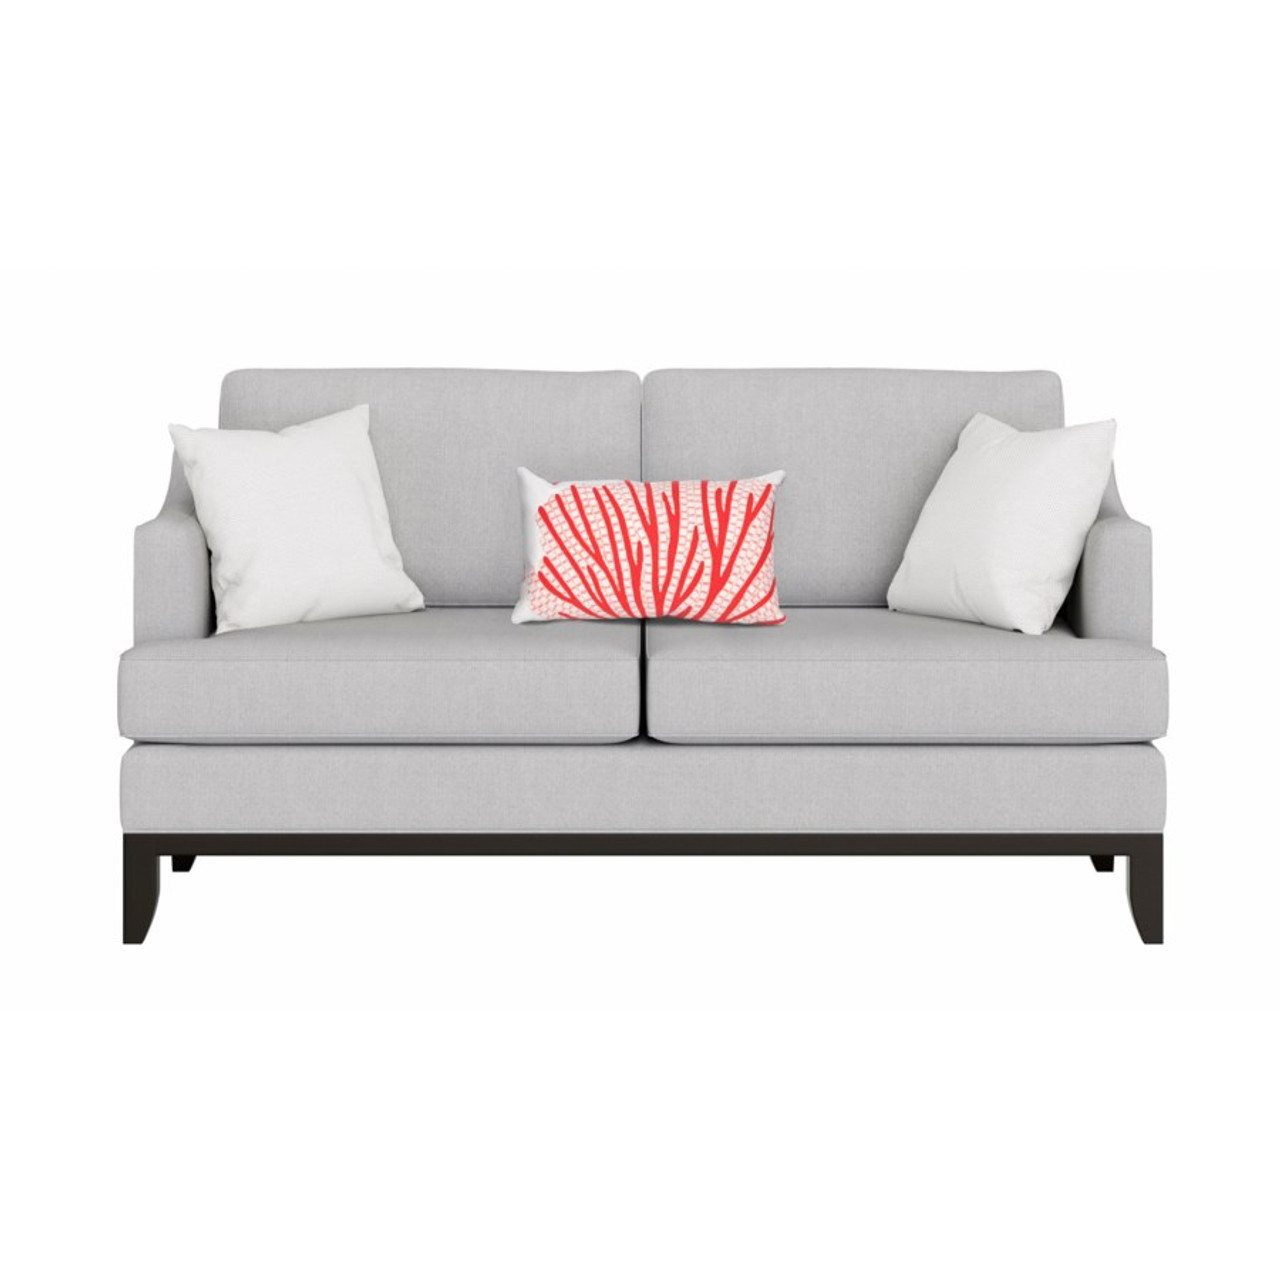 Visions Coral Fan Indoor/Outdoor Throw Pillow -  Rectangle Lifestyle